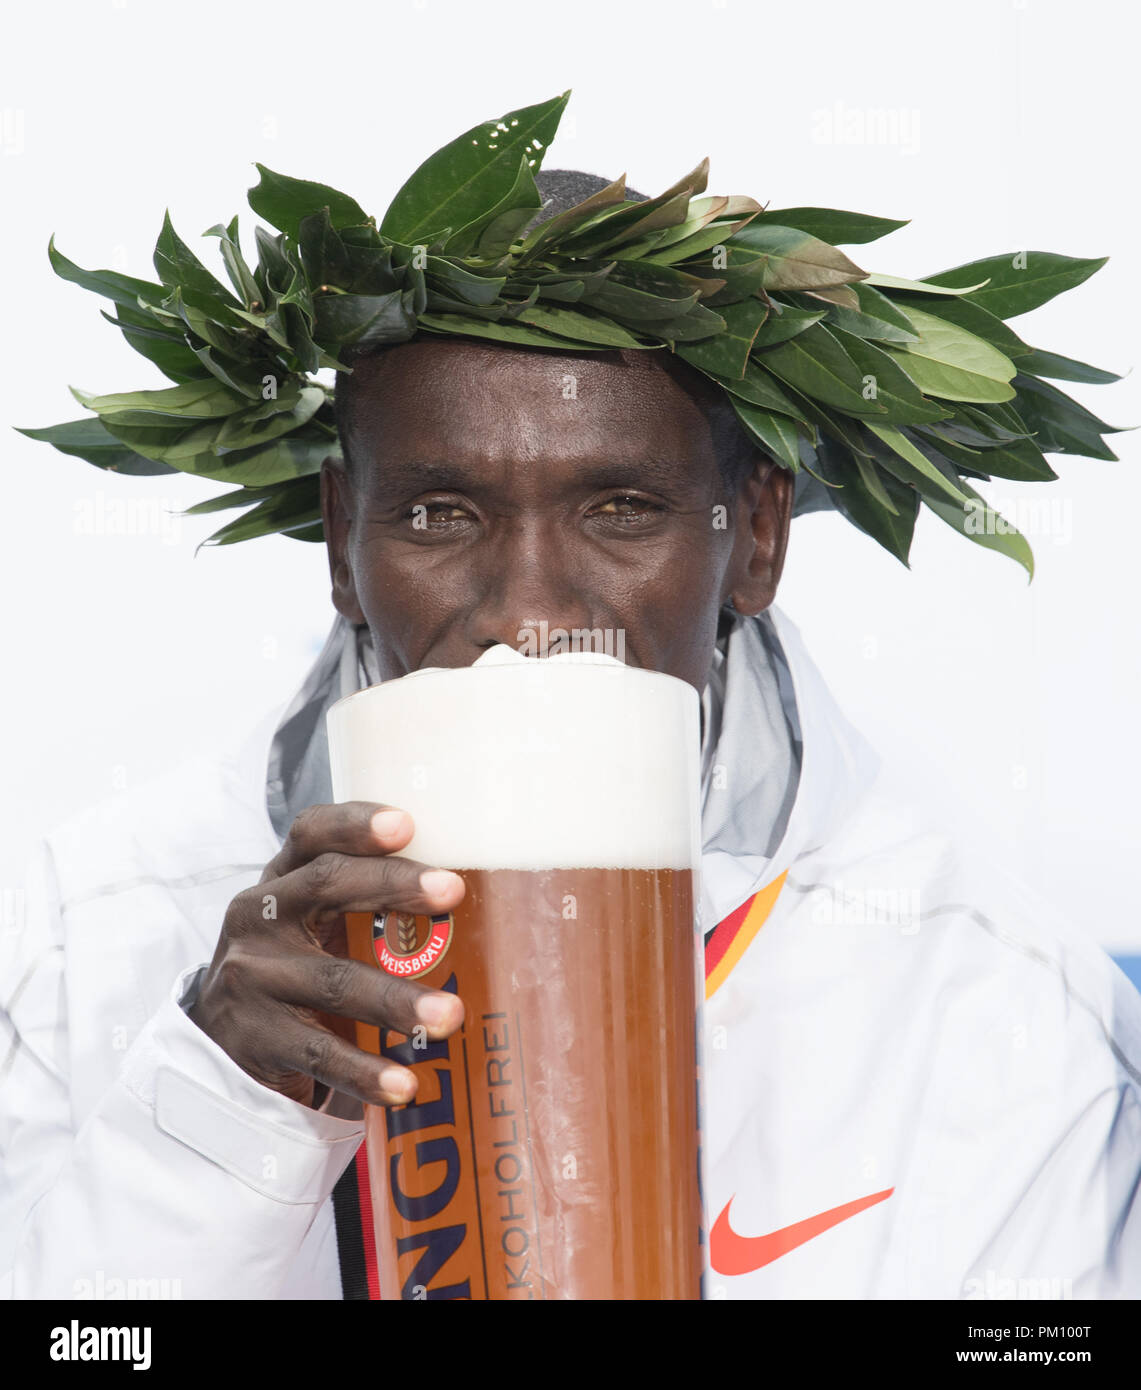 Berlin, Germany. 16 September 2018, Berlin: Kenyan Eliud Kipchoge pleased about his victory in world record time of 2:01:39 during the award ceremony of the 45th BMW Berlin Marathon and holding a glass of Erdinger non-alcoholic beer to his lips. Photo: Soeren Stache/dpa Credit: dpa picture alliance/Alamy Live News - Stock Image